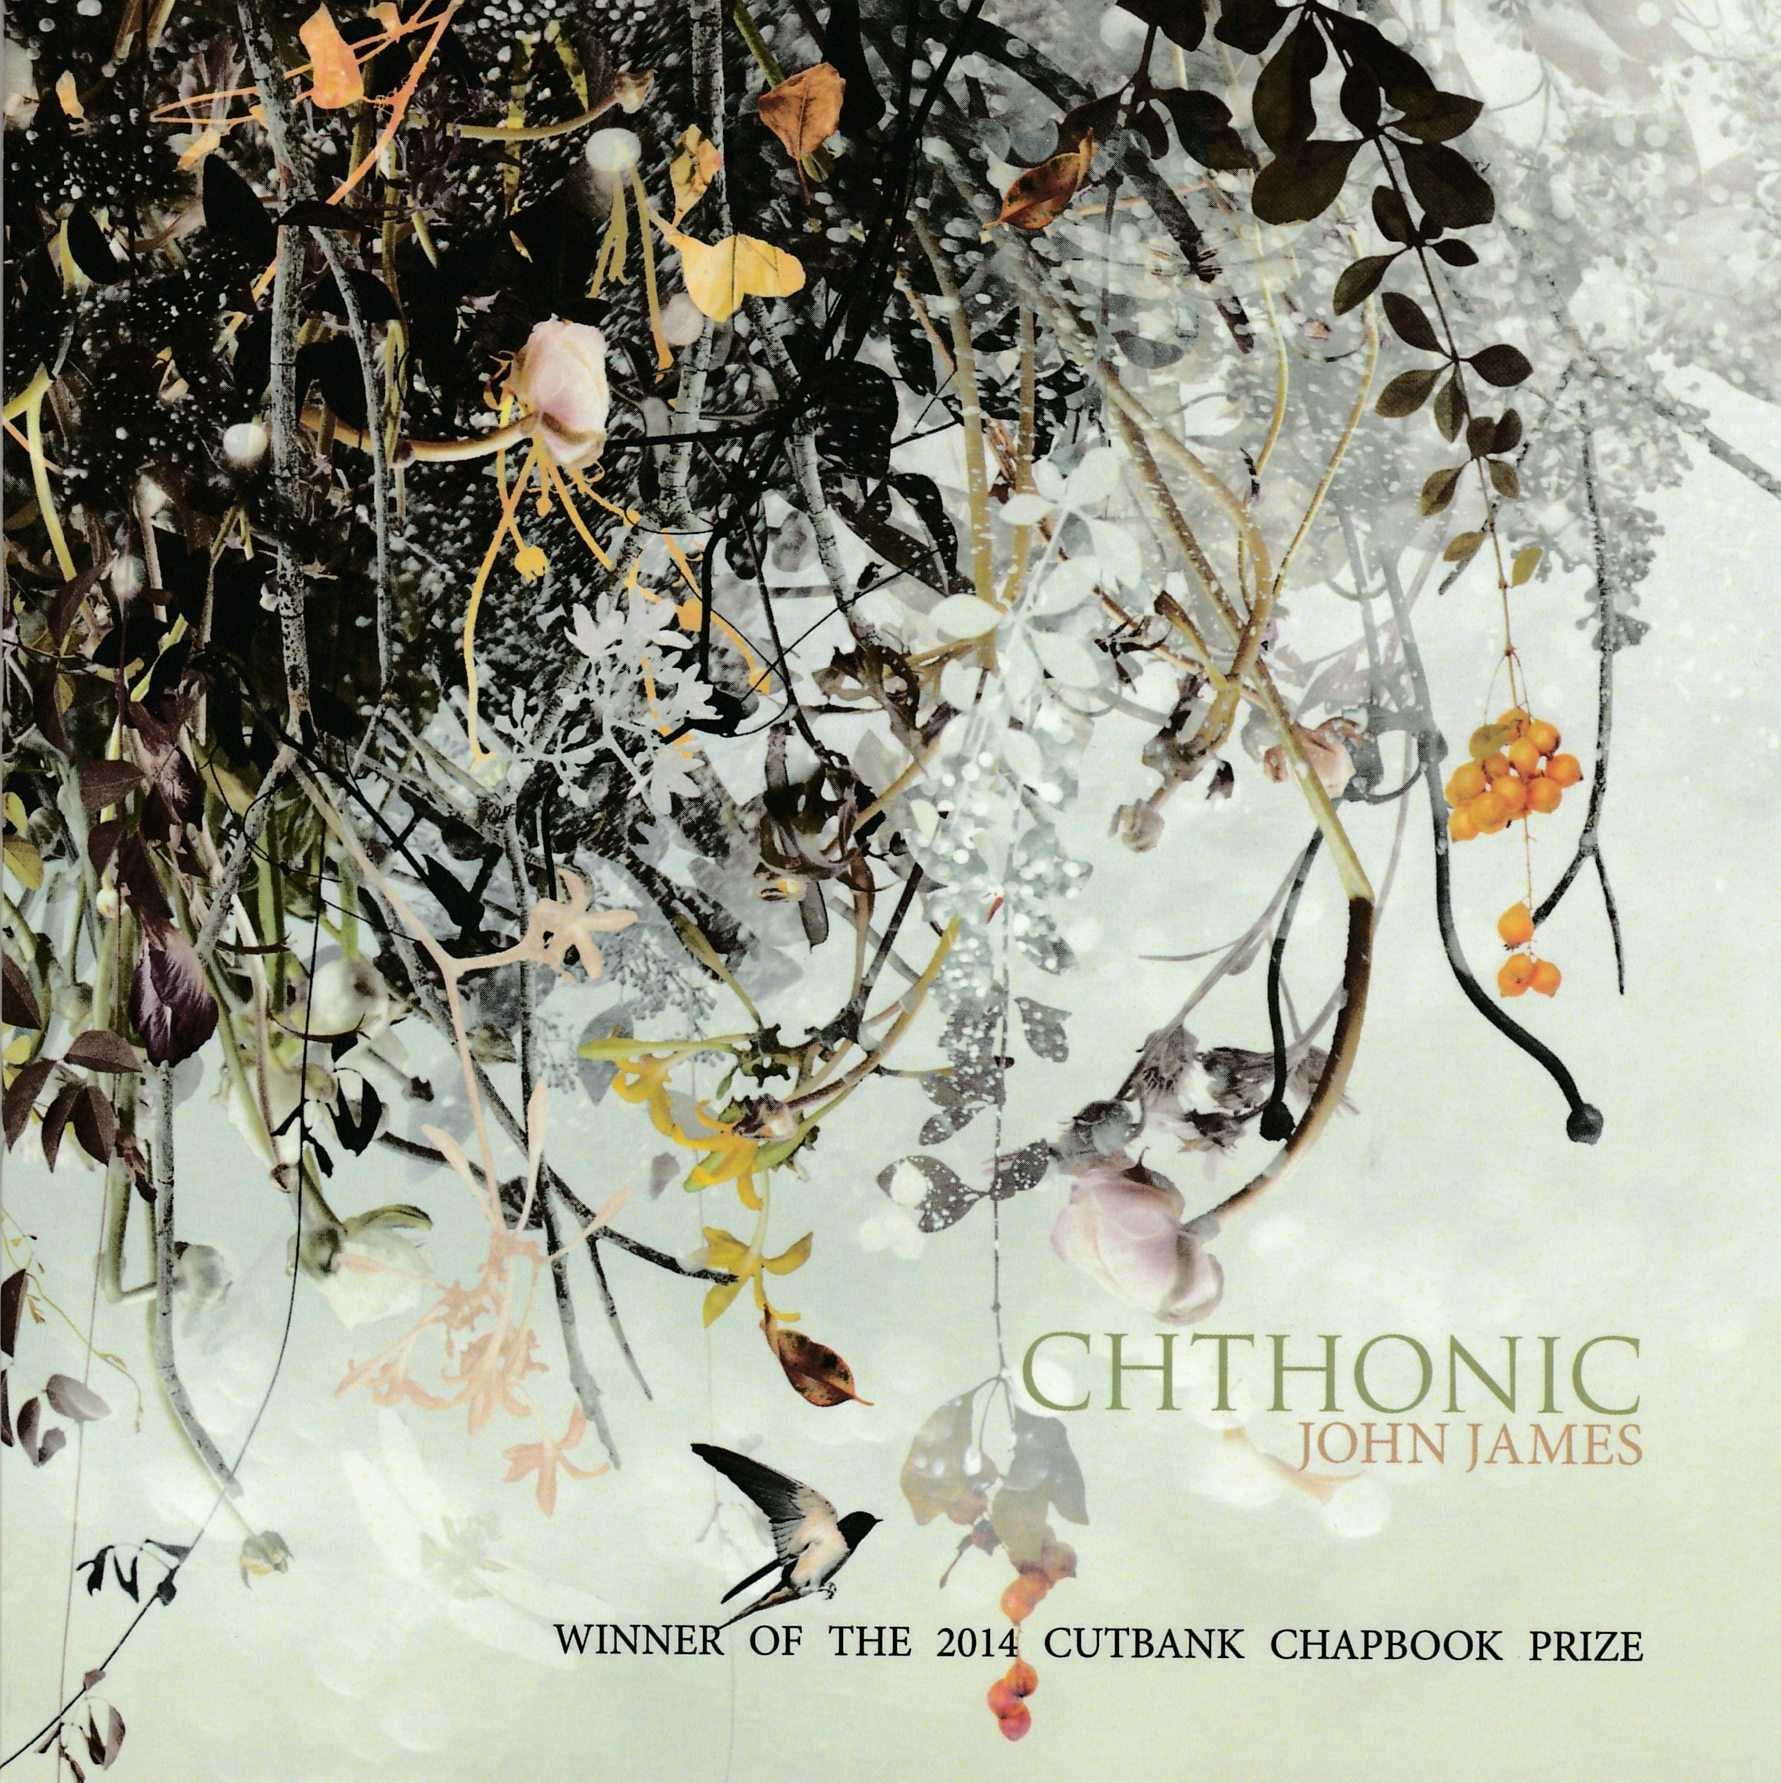 cthonic cover_0001.jpg